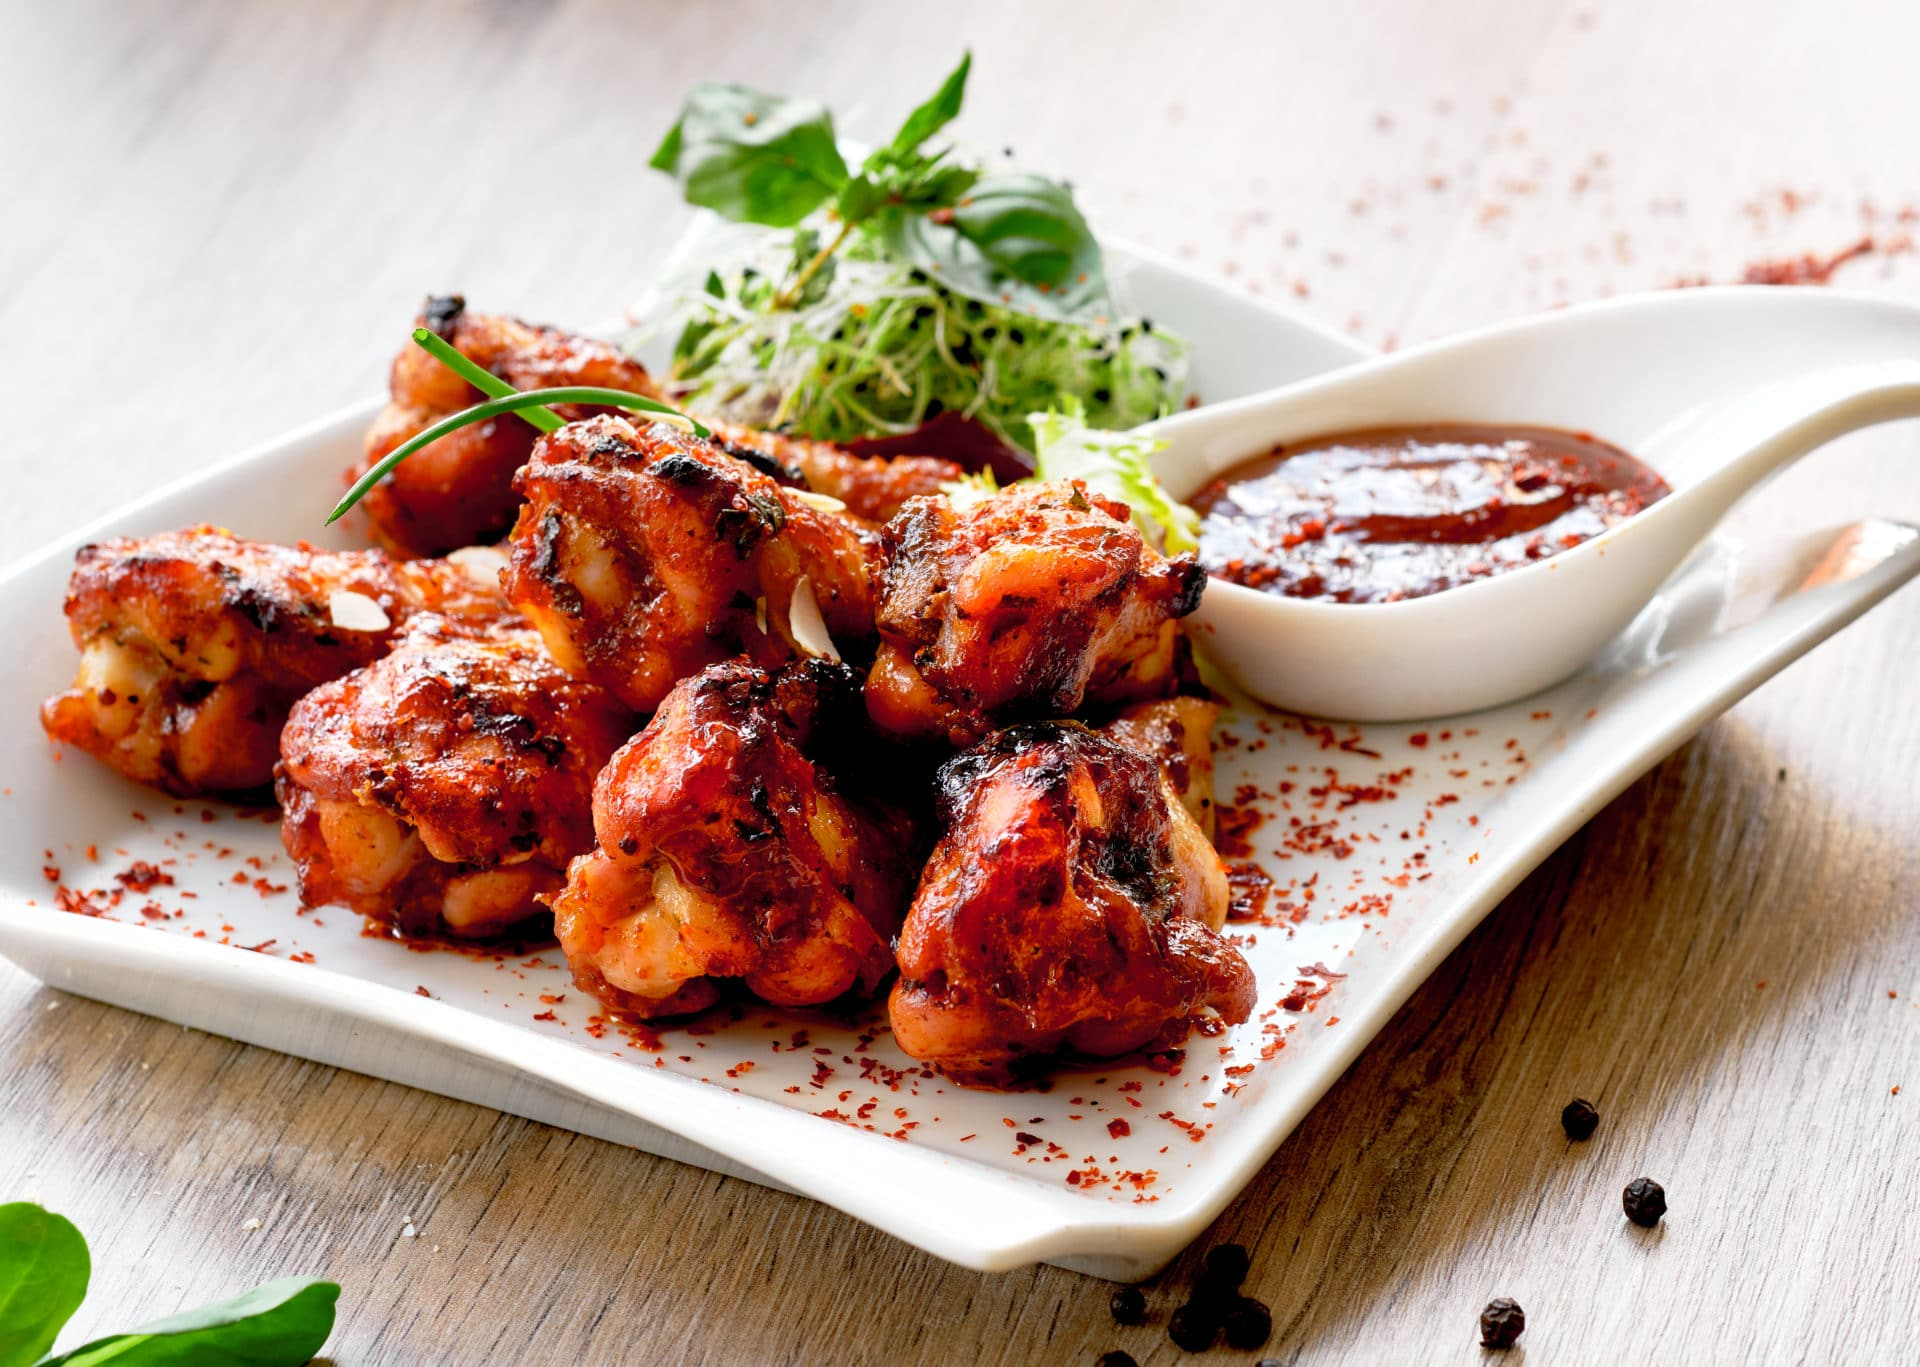 Winging It! 3 Wing Recipes To Try Tonight That Will Have You Licking Your Fingers